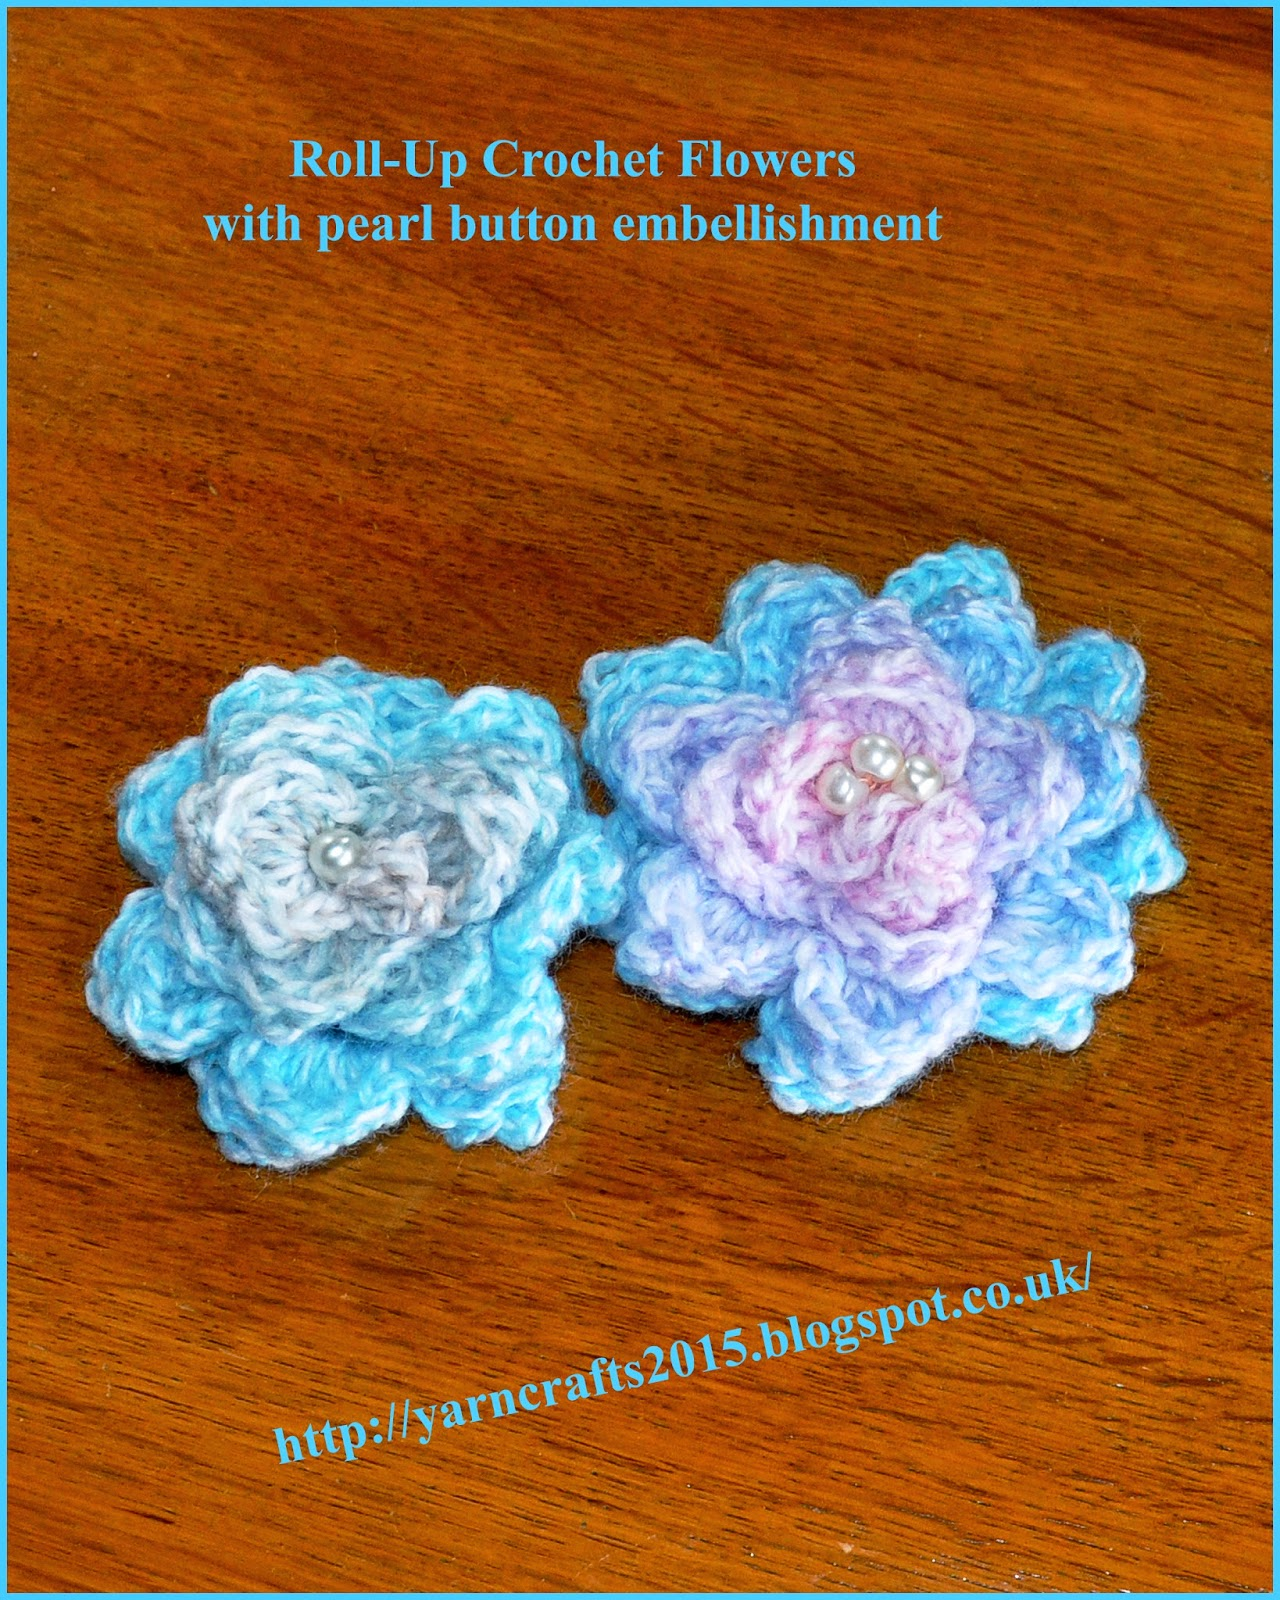 my roll-up crocheted flowers with pearl button embellishment